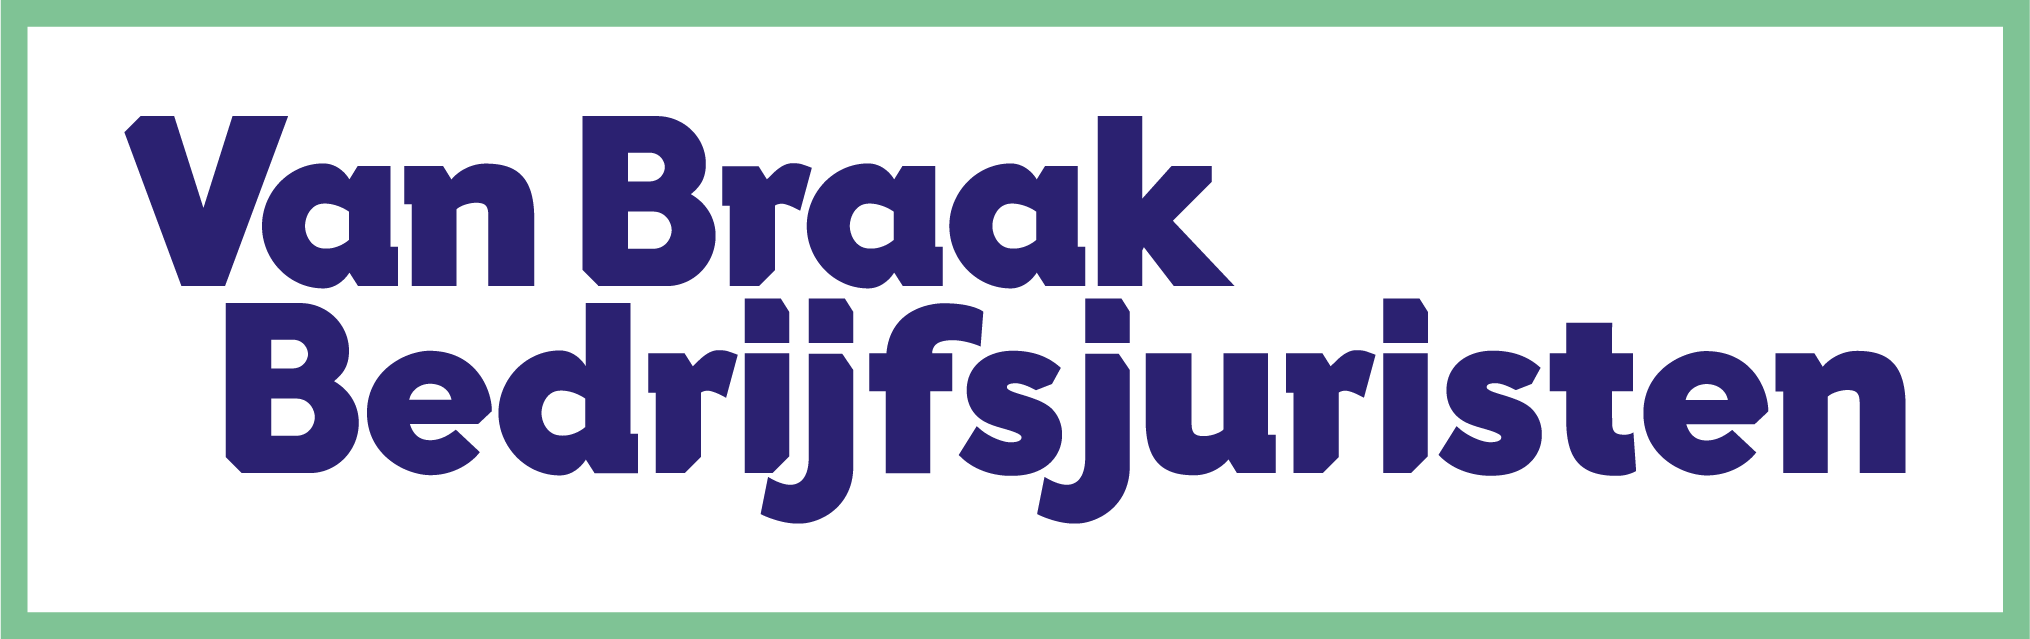 Van Braak Accountants logo